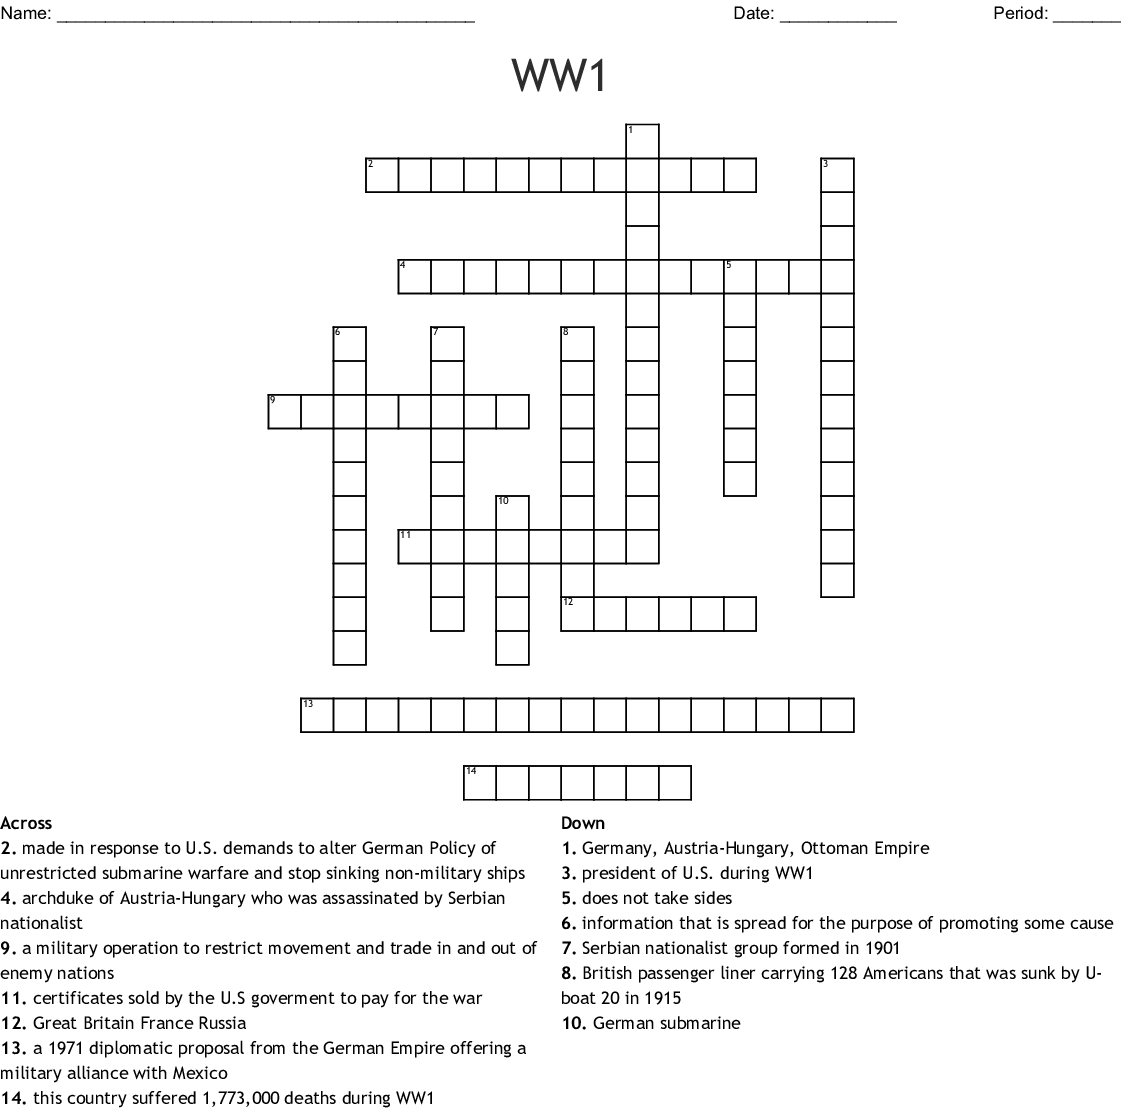 World War 1 Imperialism Crossword Puzzle